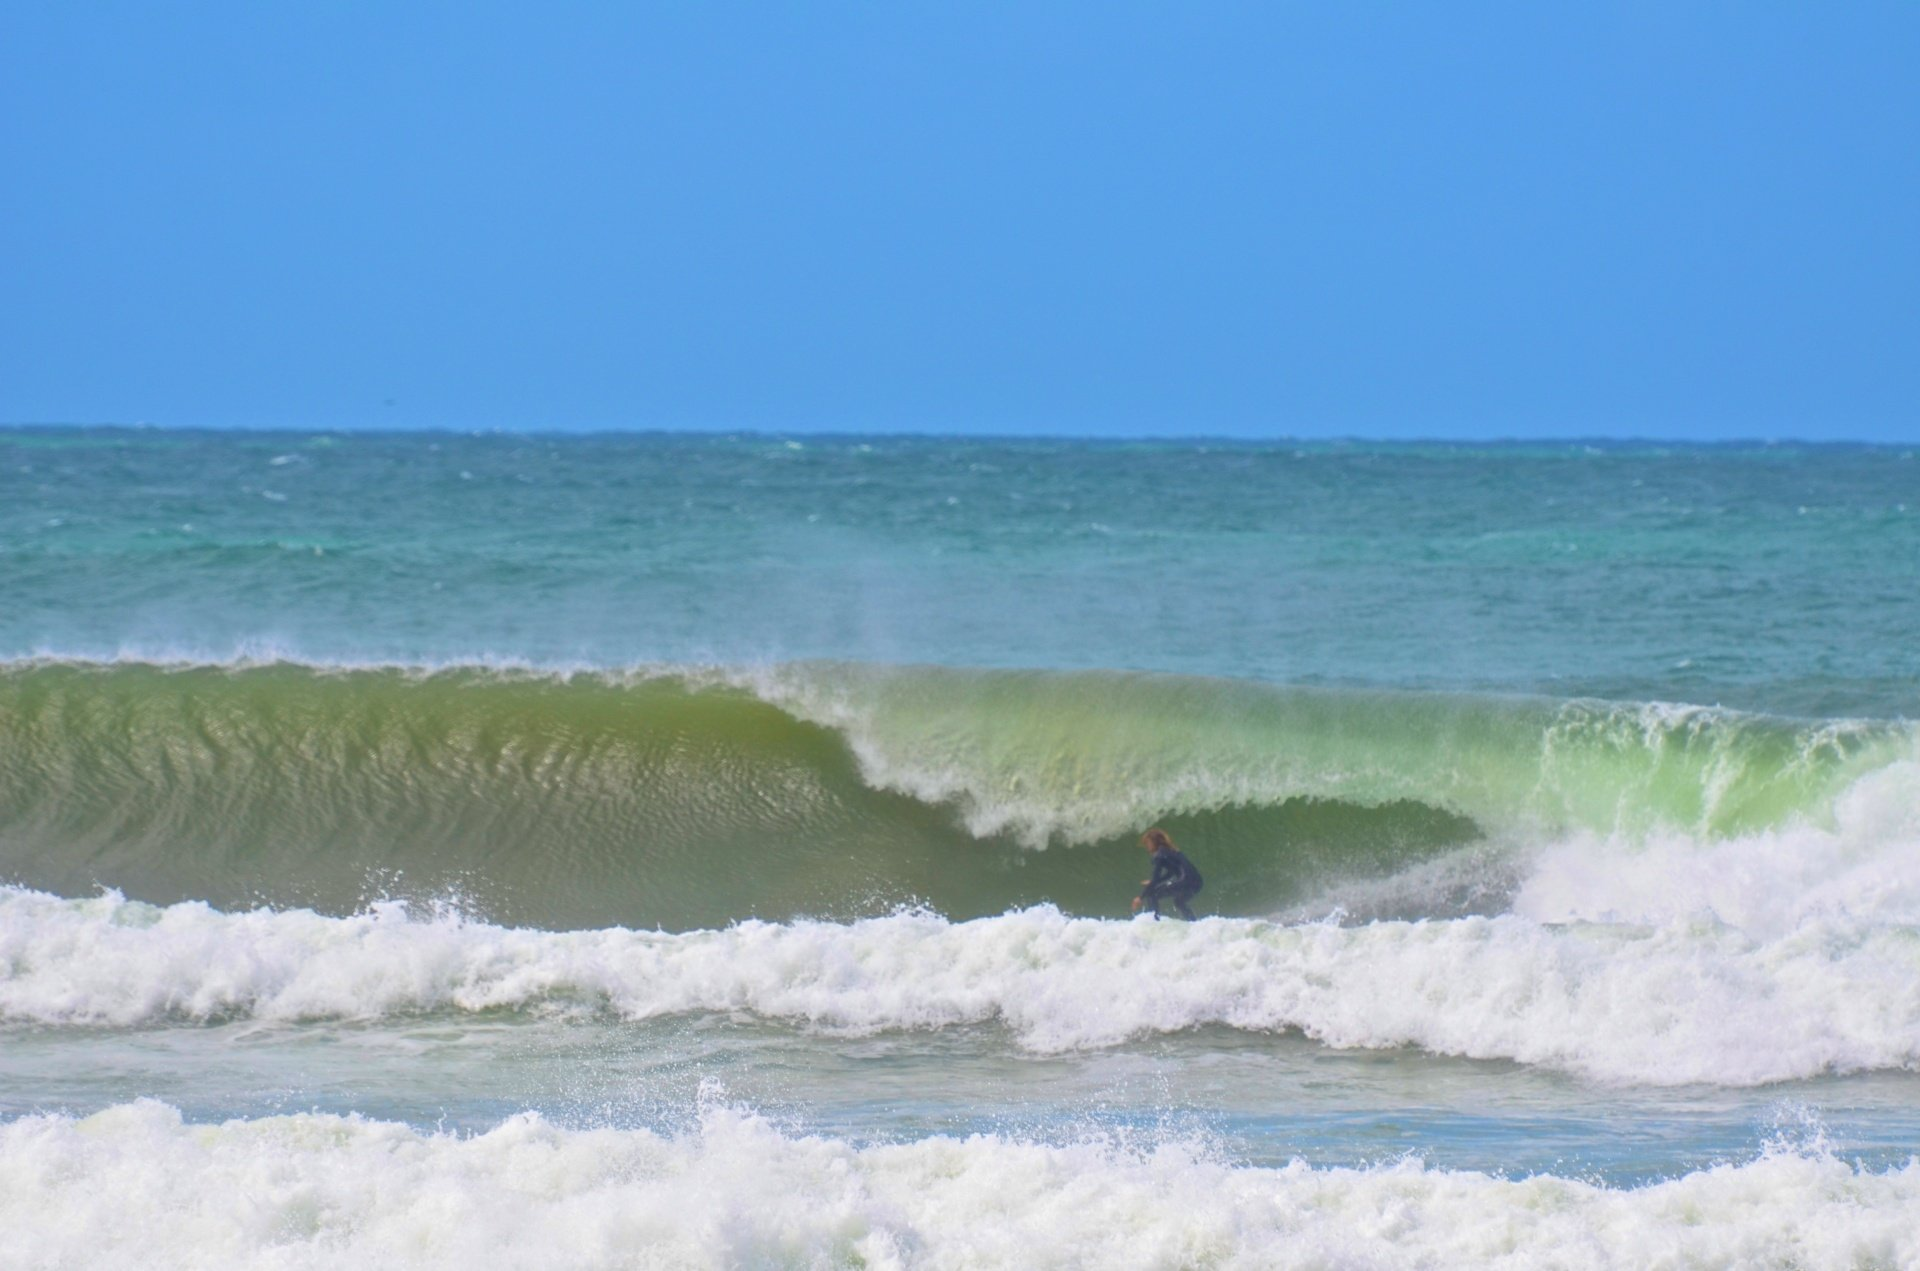 Justin Graydon Bishop's photo of Jeffreys Bay (J-Bay)